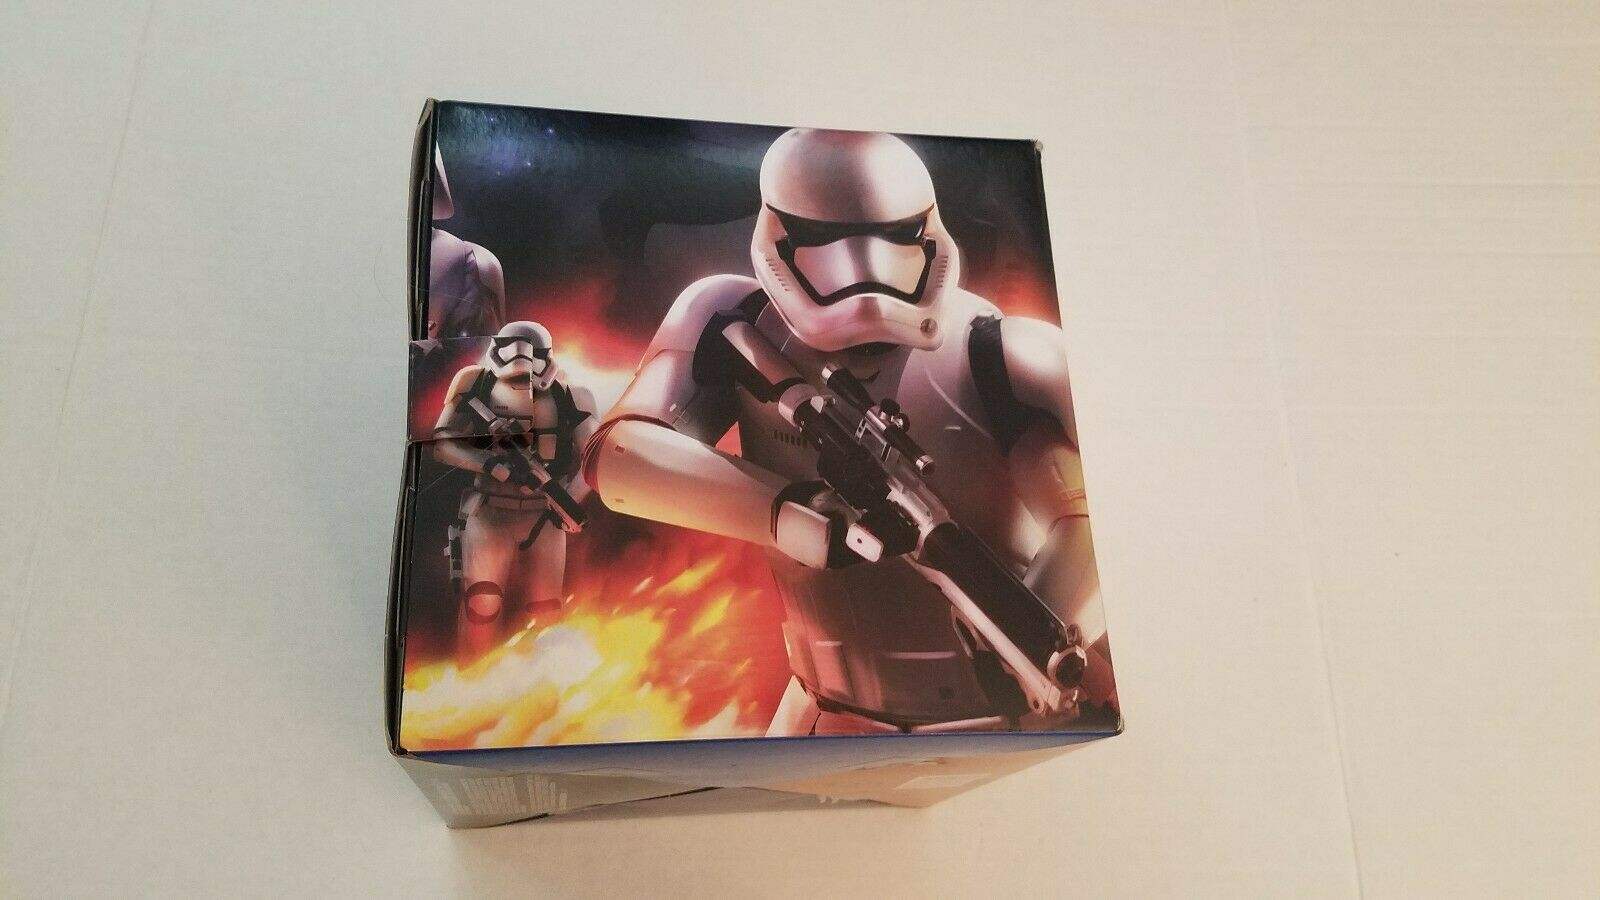 STAR WARS AMAZON EXCLUSIVE THE FORCE AWAKENS CLONE TROOPERS SET